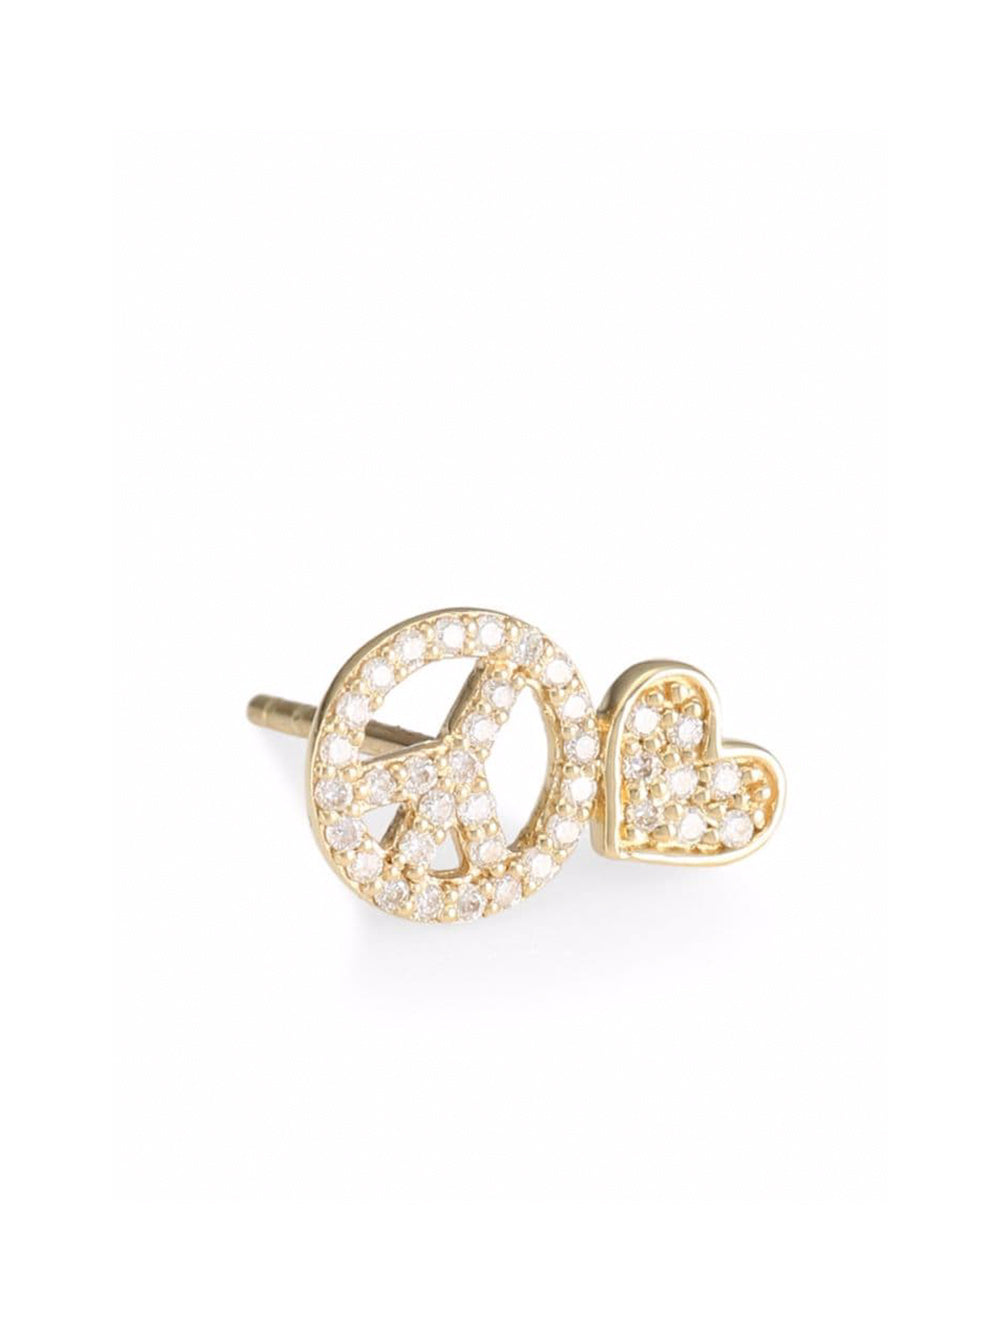 Peace & Heart Stud Earring (Left)